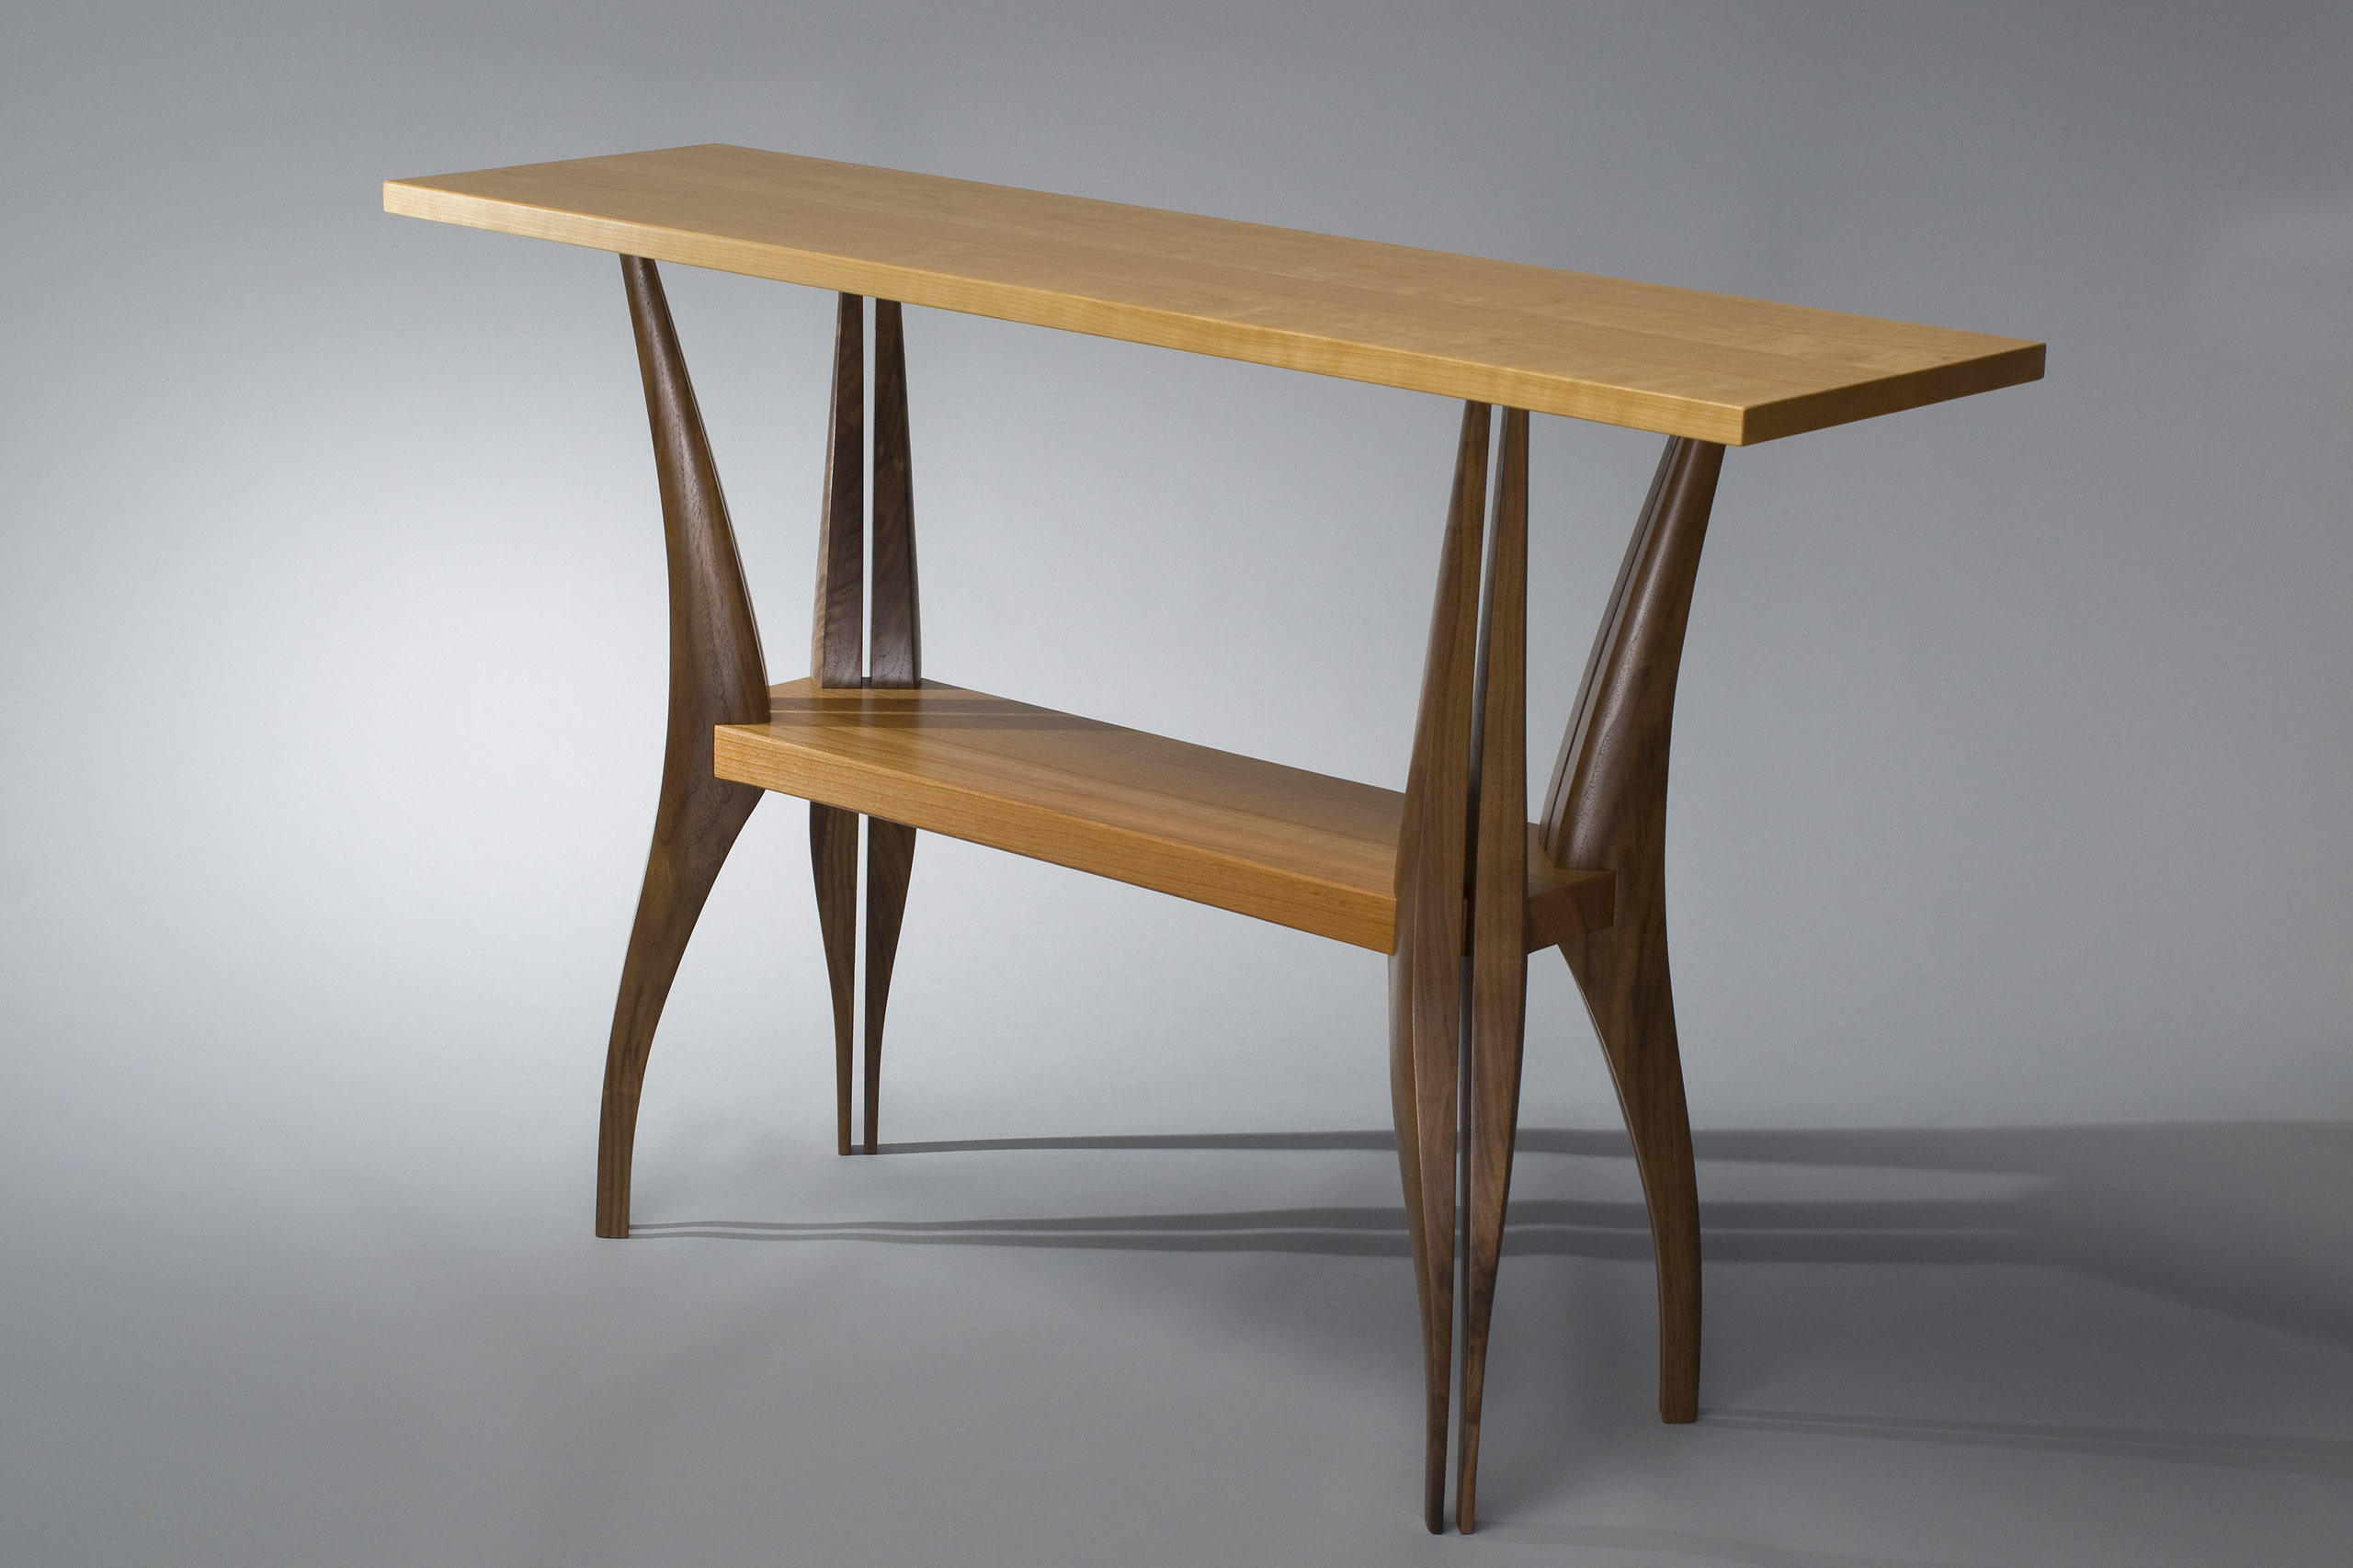 hall timber table tribeca made loop products console australian solid leg